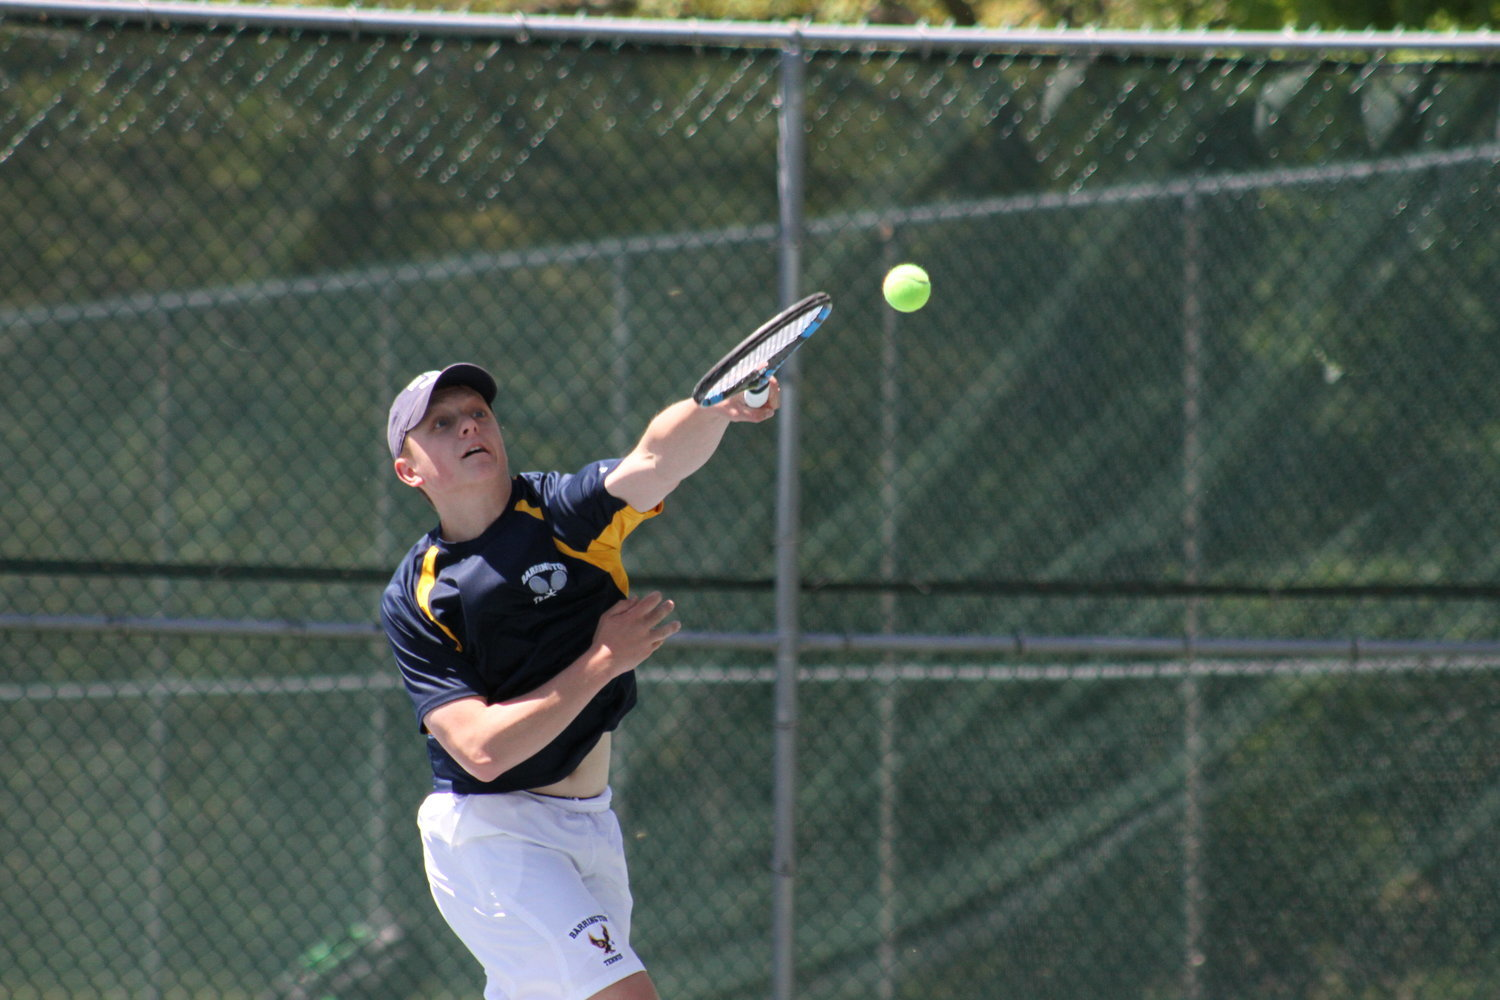 Owen Voigt (shown during a match last year) would have been a captain on the boys tennis team this spring.